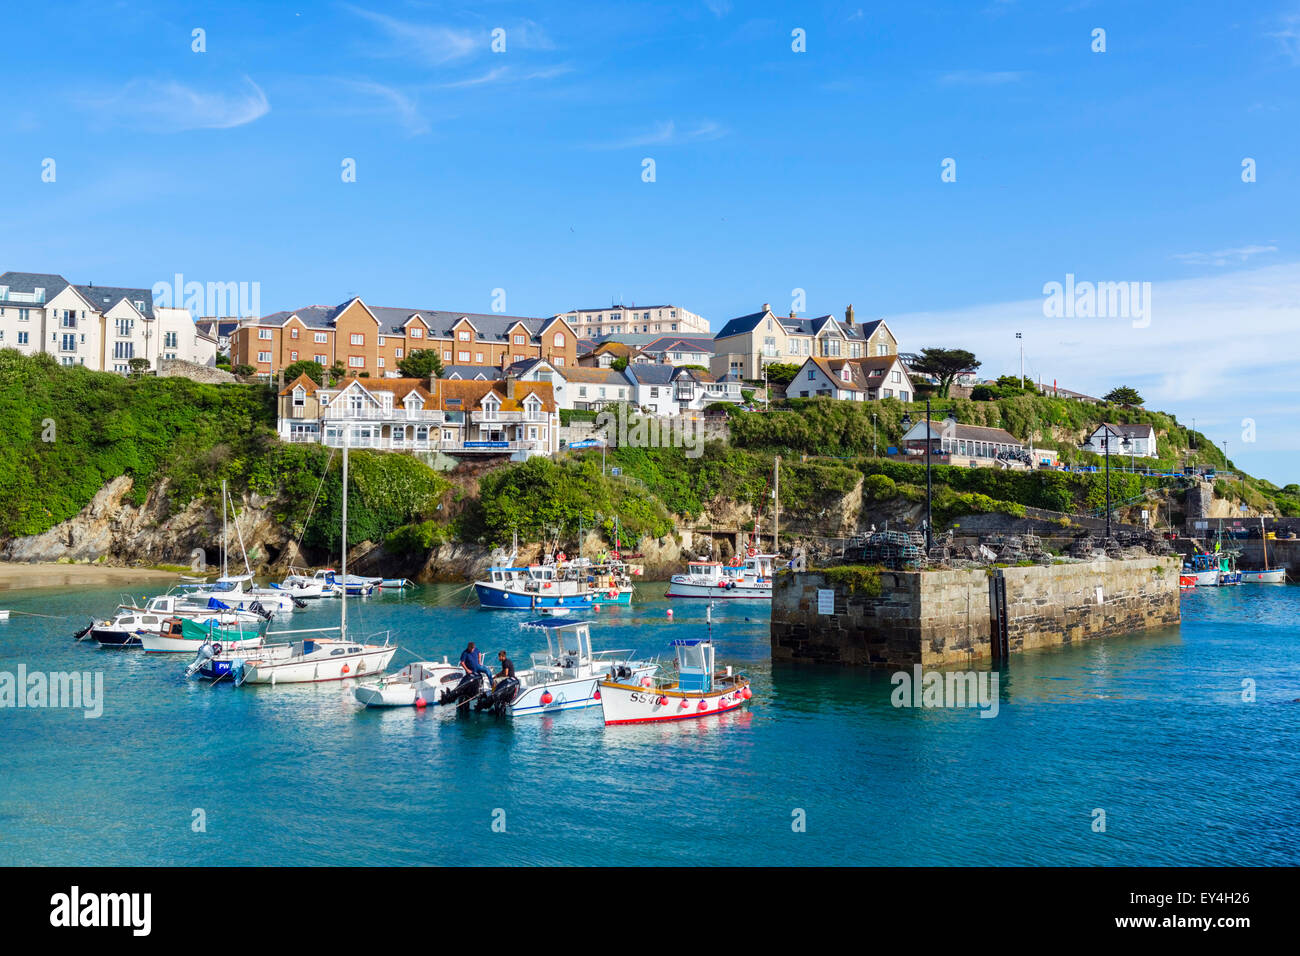 The harbour in Newquay, Cornwall, England, UK Stock Photo